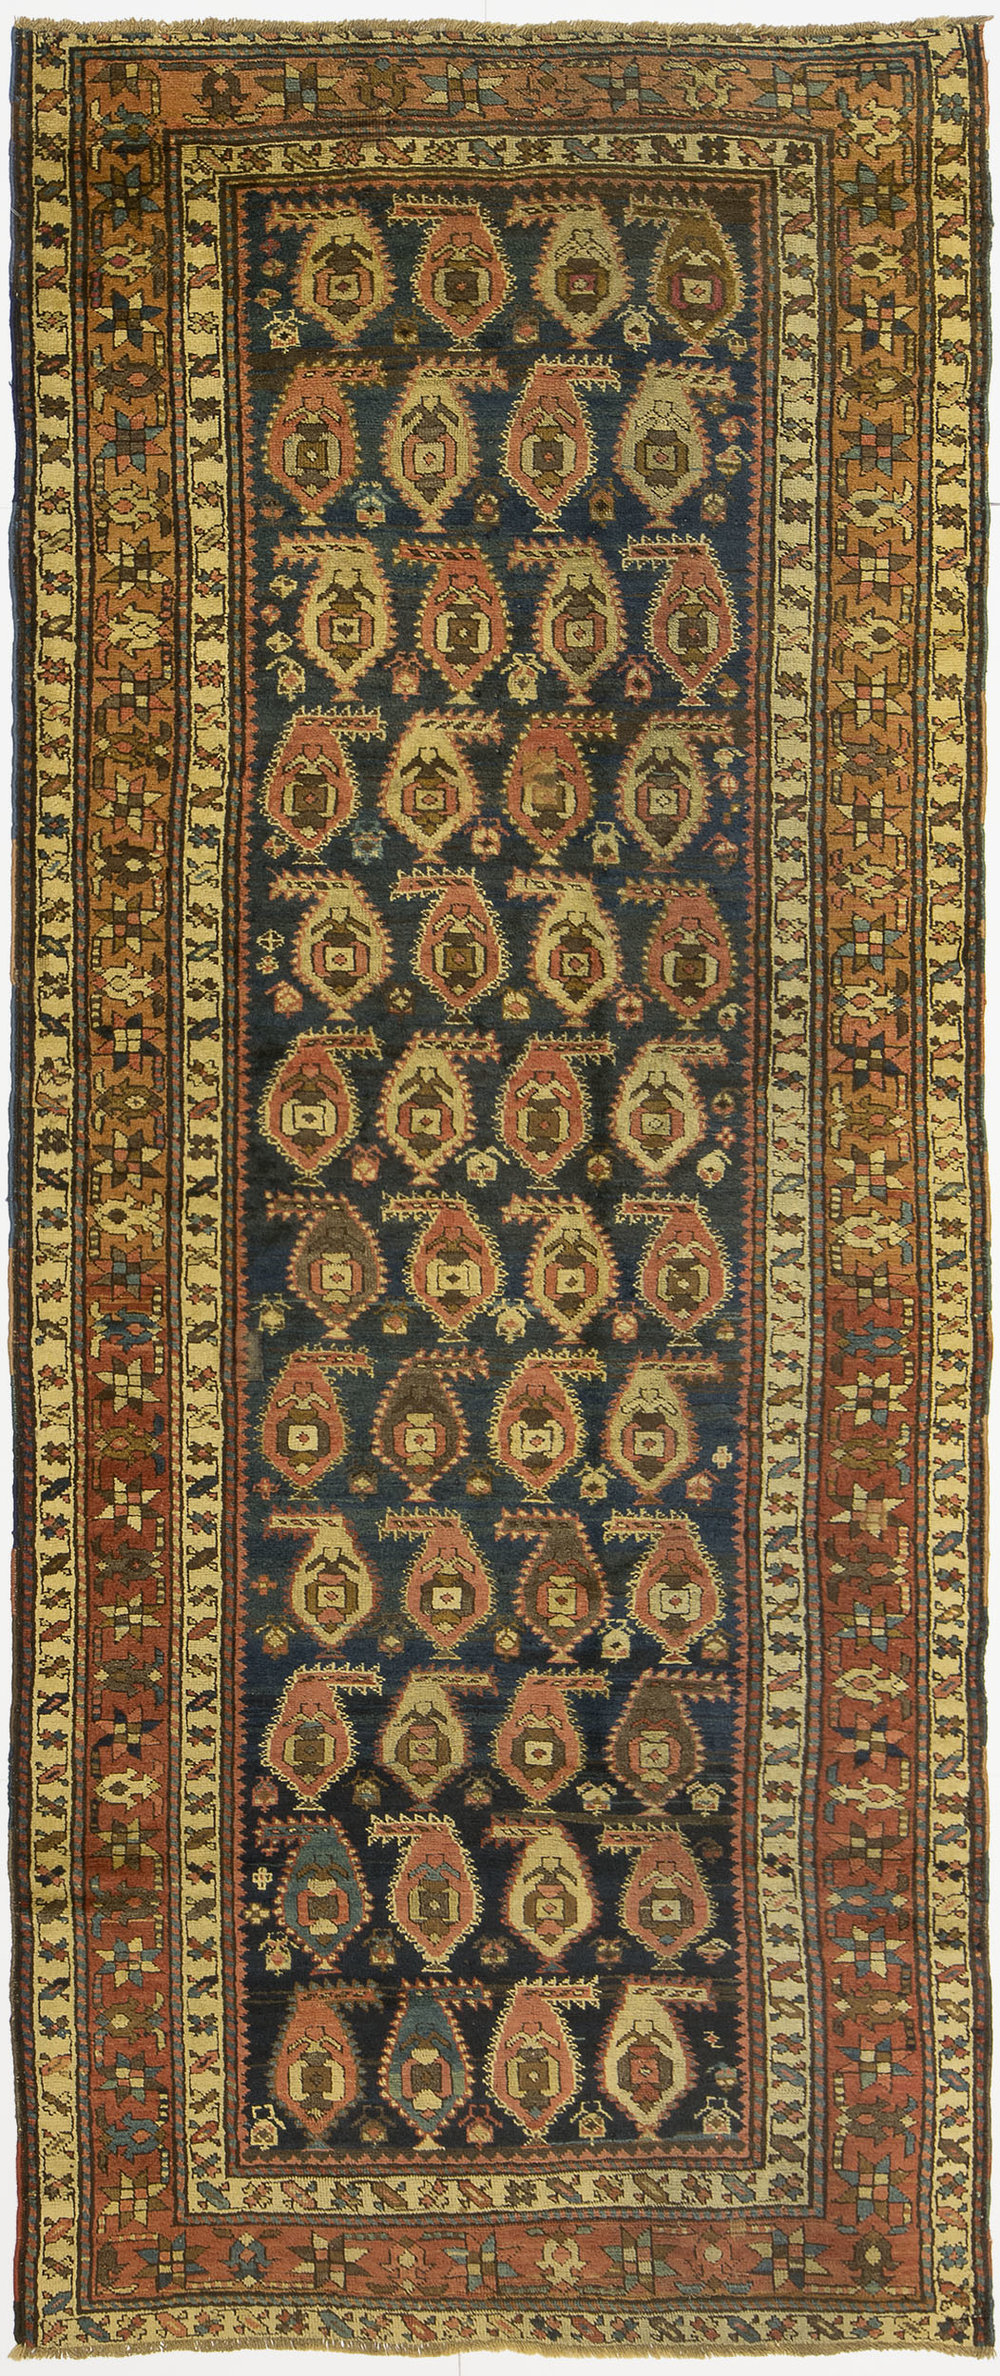 "Shirvan Runner 8' 10"" x 3' 10"""